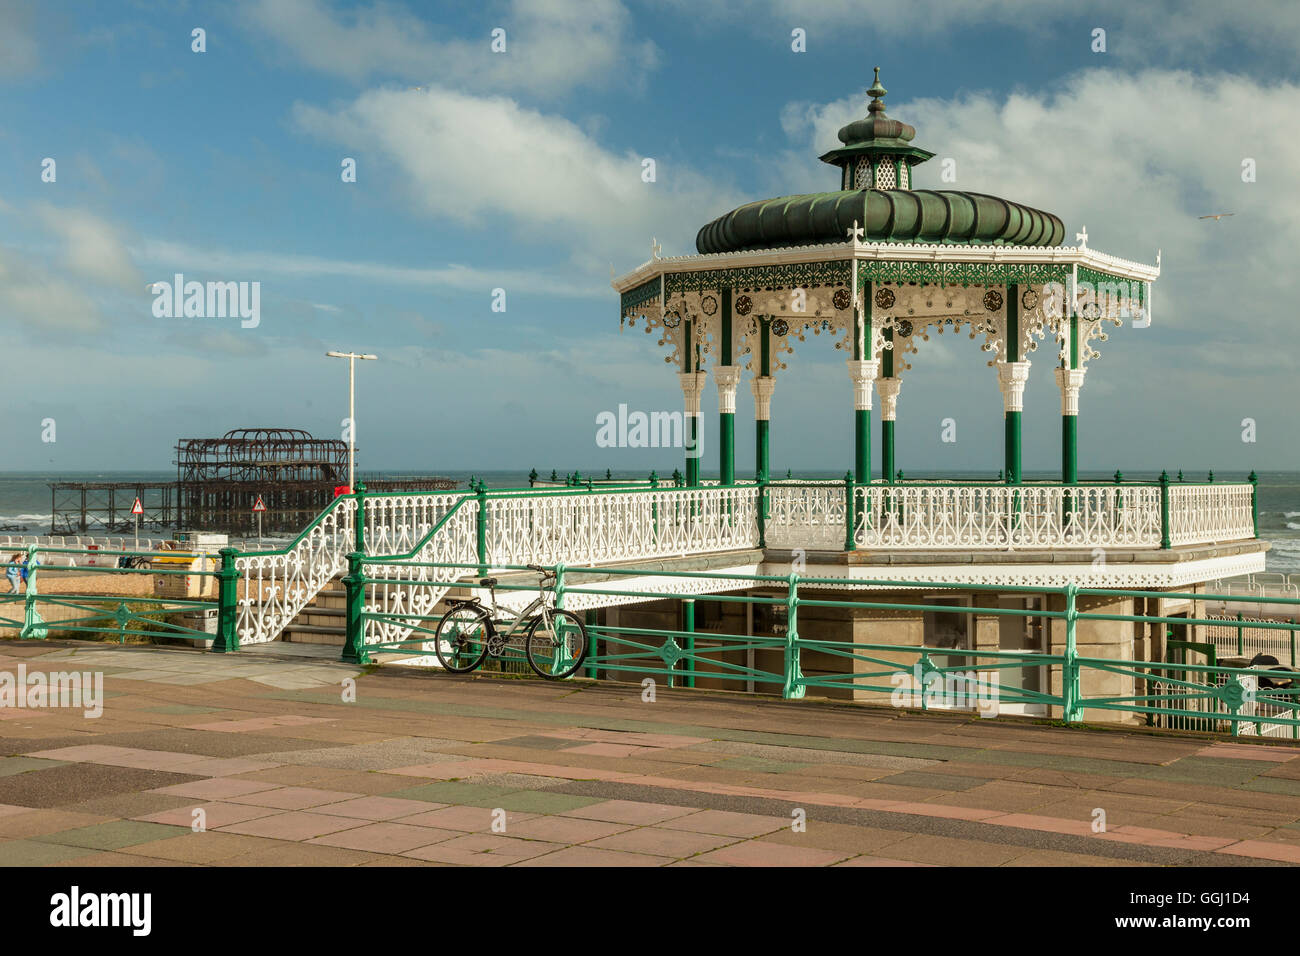 Summer afternoon at the Bandstand in Brighton, England. - Stock Image